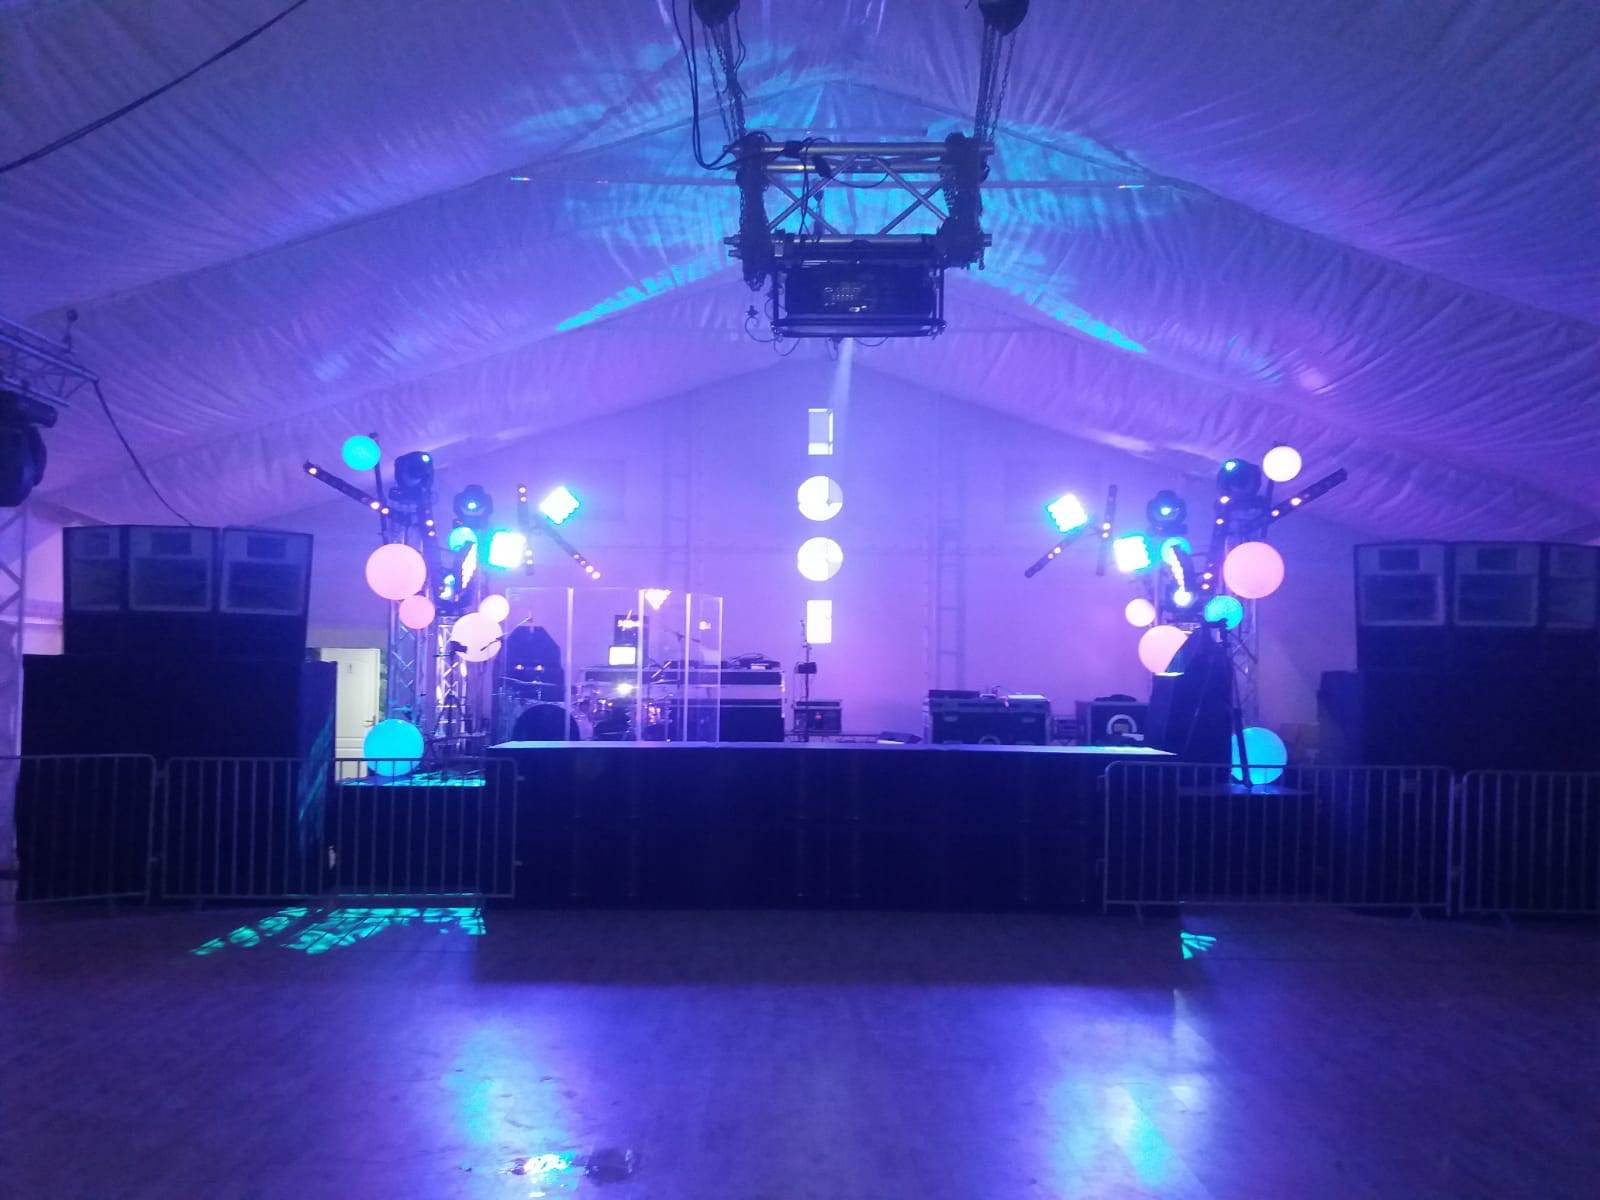 Summer Well After Party Tent 2018@ Domeniul Stirbei Setup Sunet Scena Sunet Lumini Concert Live Dj  13 Music Gear (17)